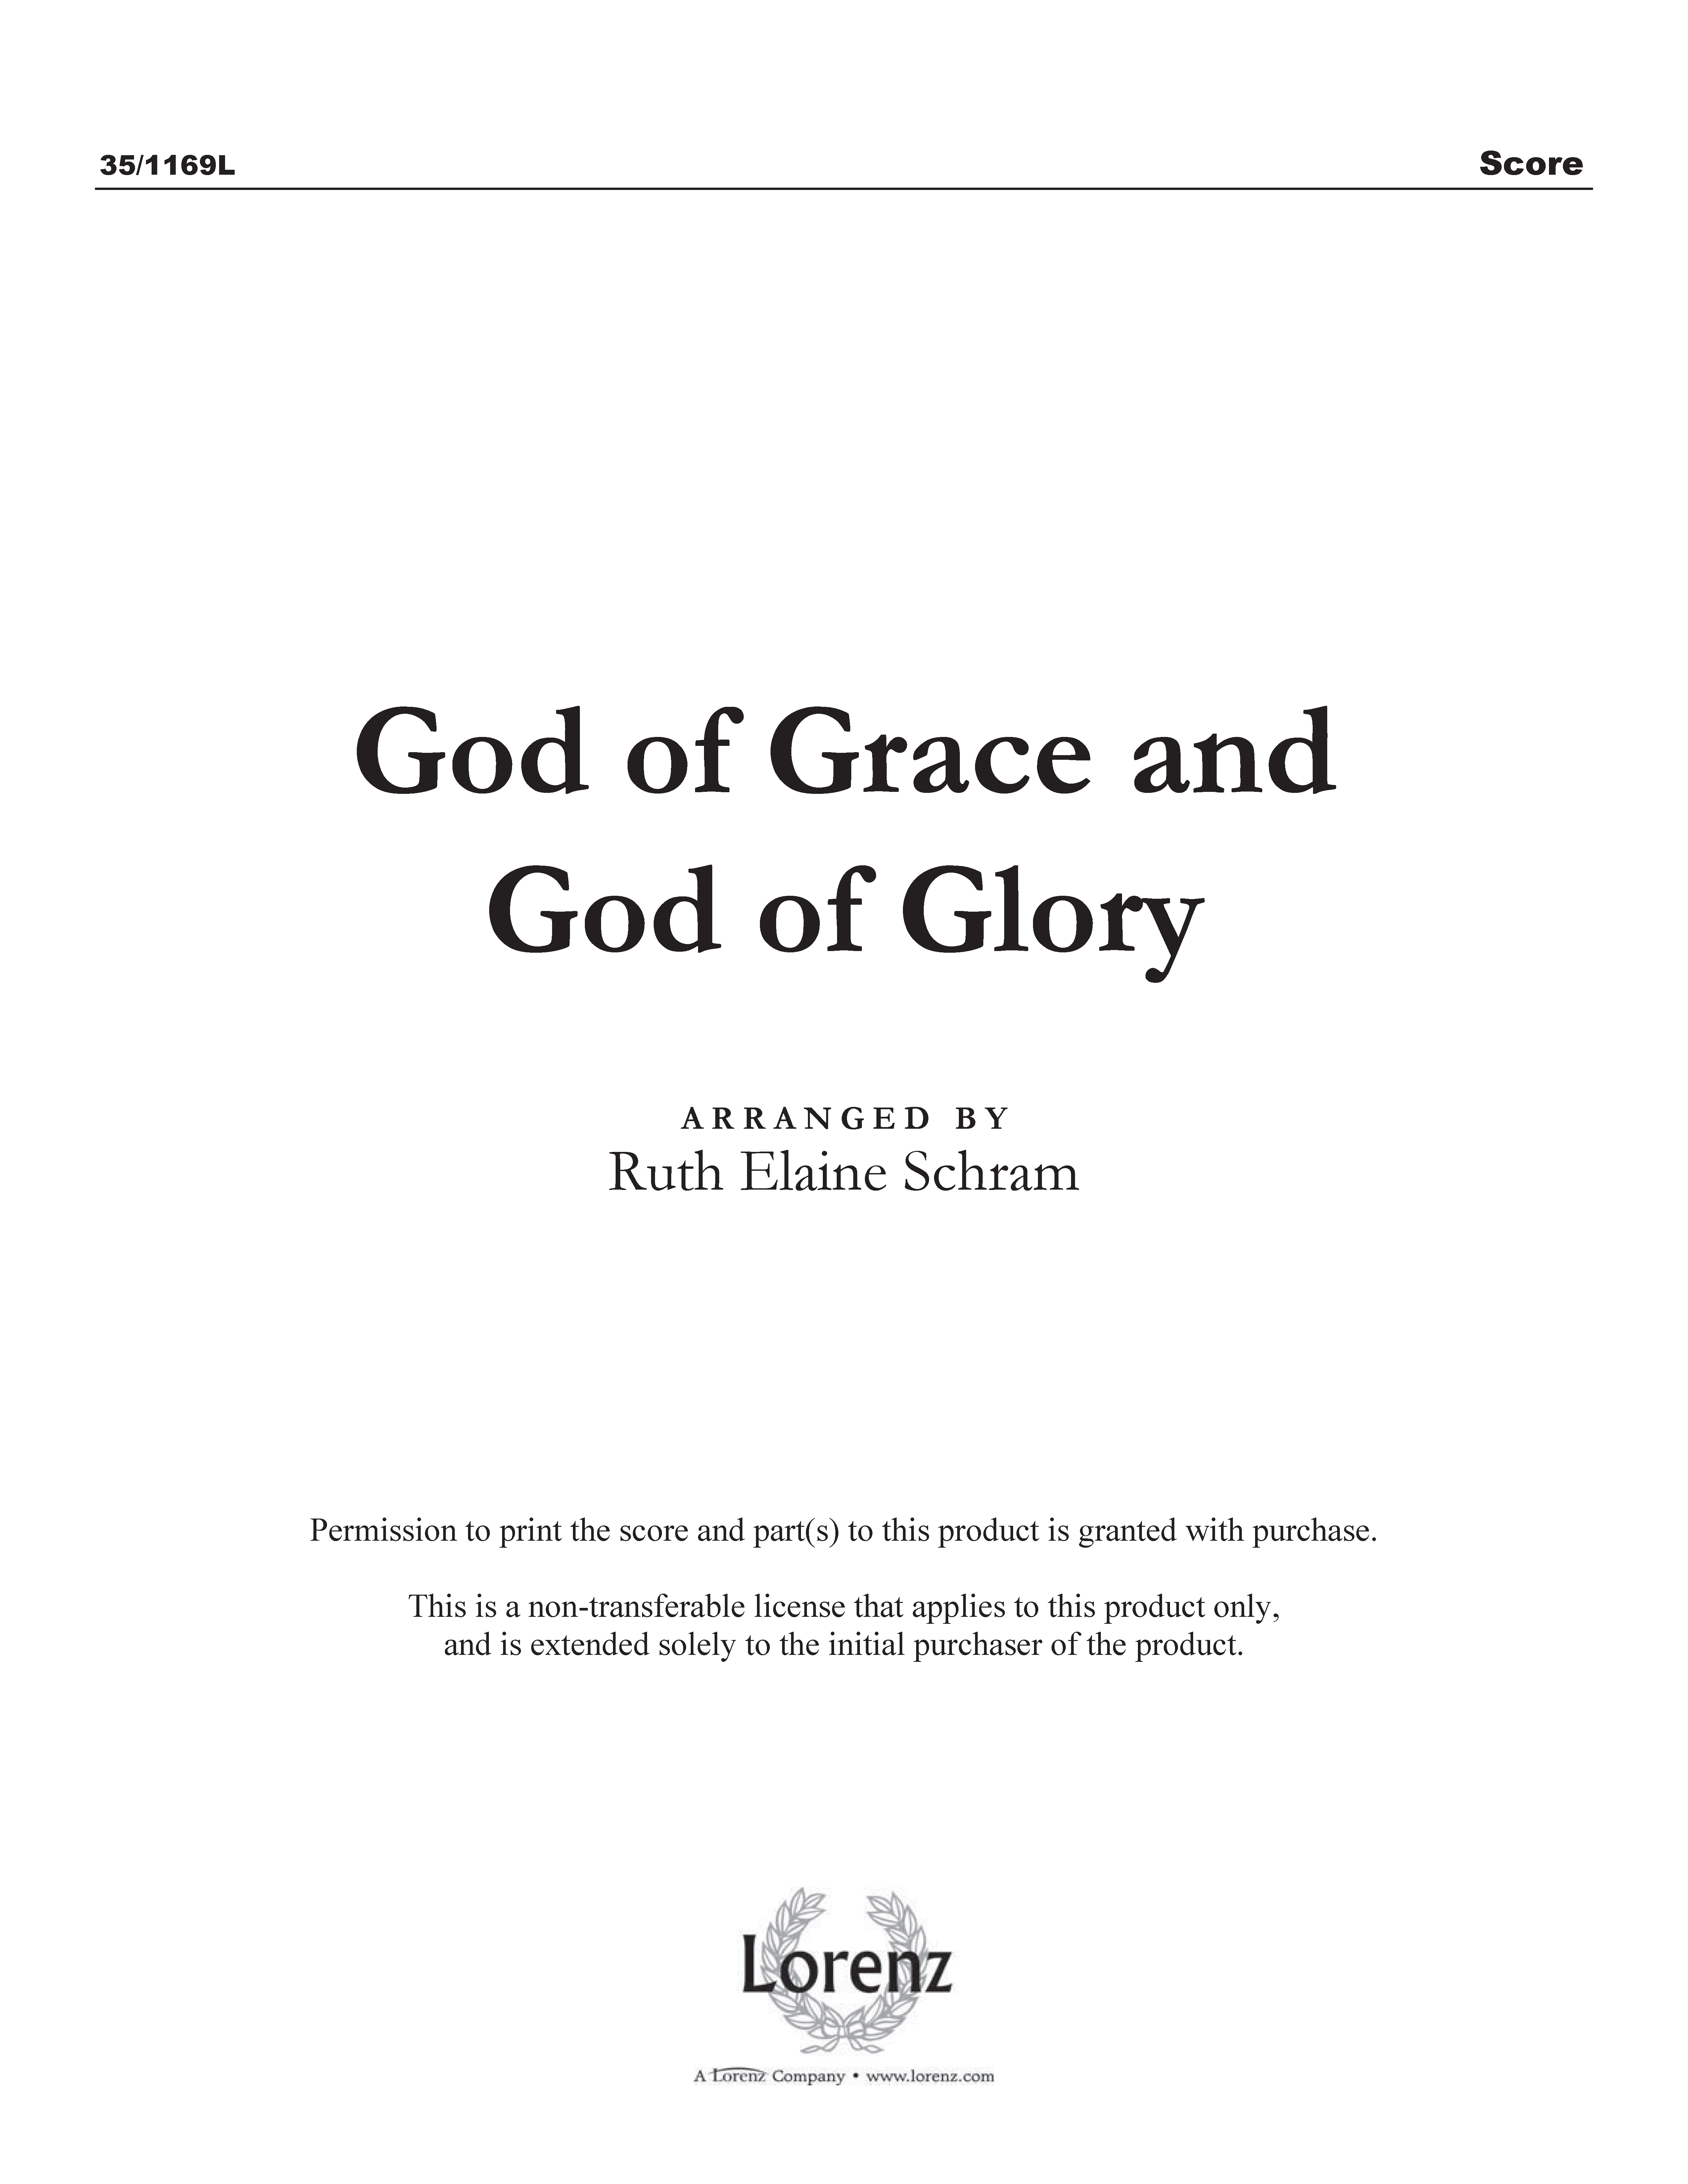 God of Grace and God of Glory (Digital Delivery)